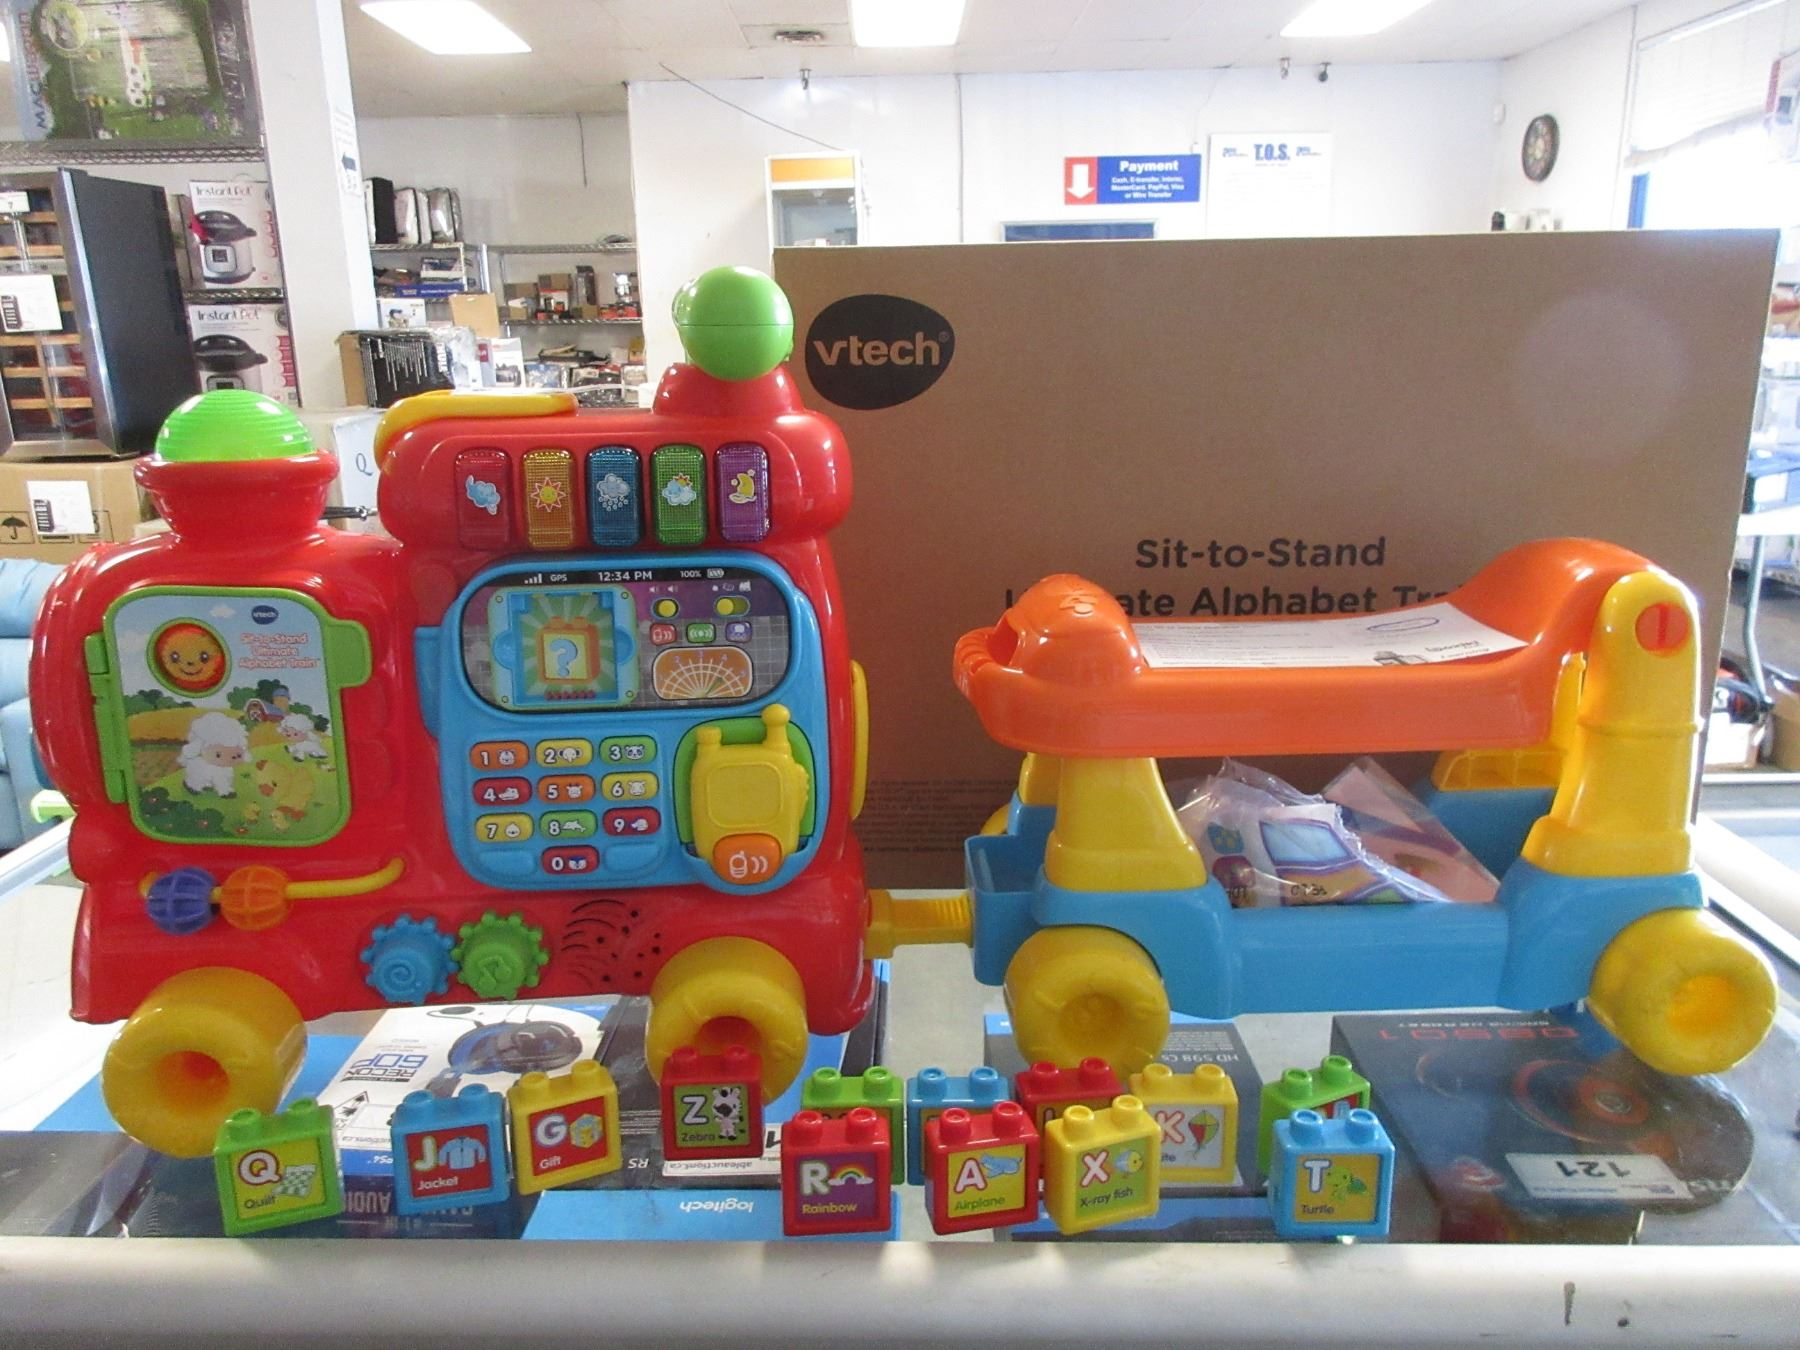 Two Vtech Sit To Stand Ultimate Alphabet Train Toys